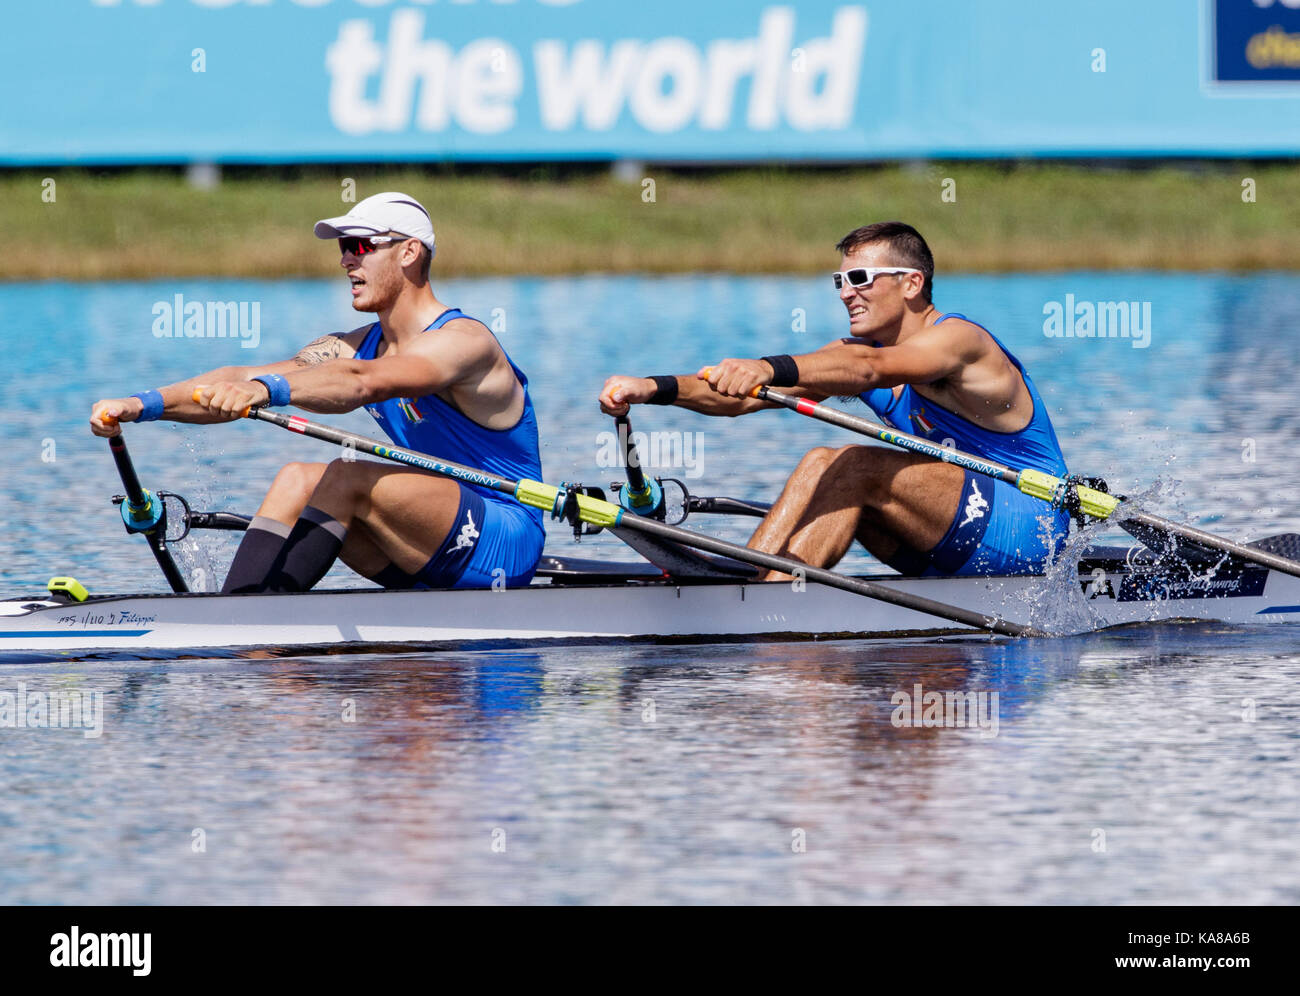 Sarasota-Bradenton, Florida, USA. 25th Sep, 2017. Filippo Mondelli and Luca Rambaldi of team Italy during (M2x) Men's Double Sculls - Heat in the World Rowing Championships being held at Nathan Benderson Park in Sarasota-Bradenton, Florida. Del Mecum/CSM/Alamy Live News Stock Photo